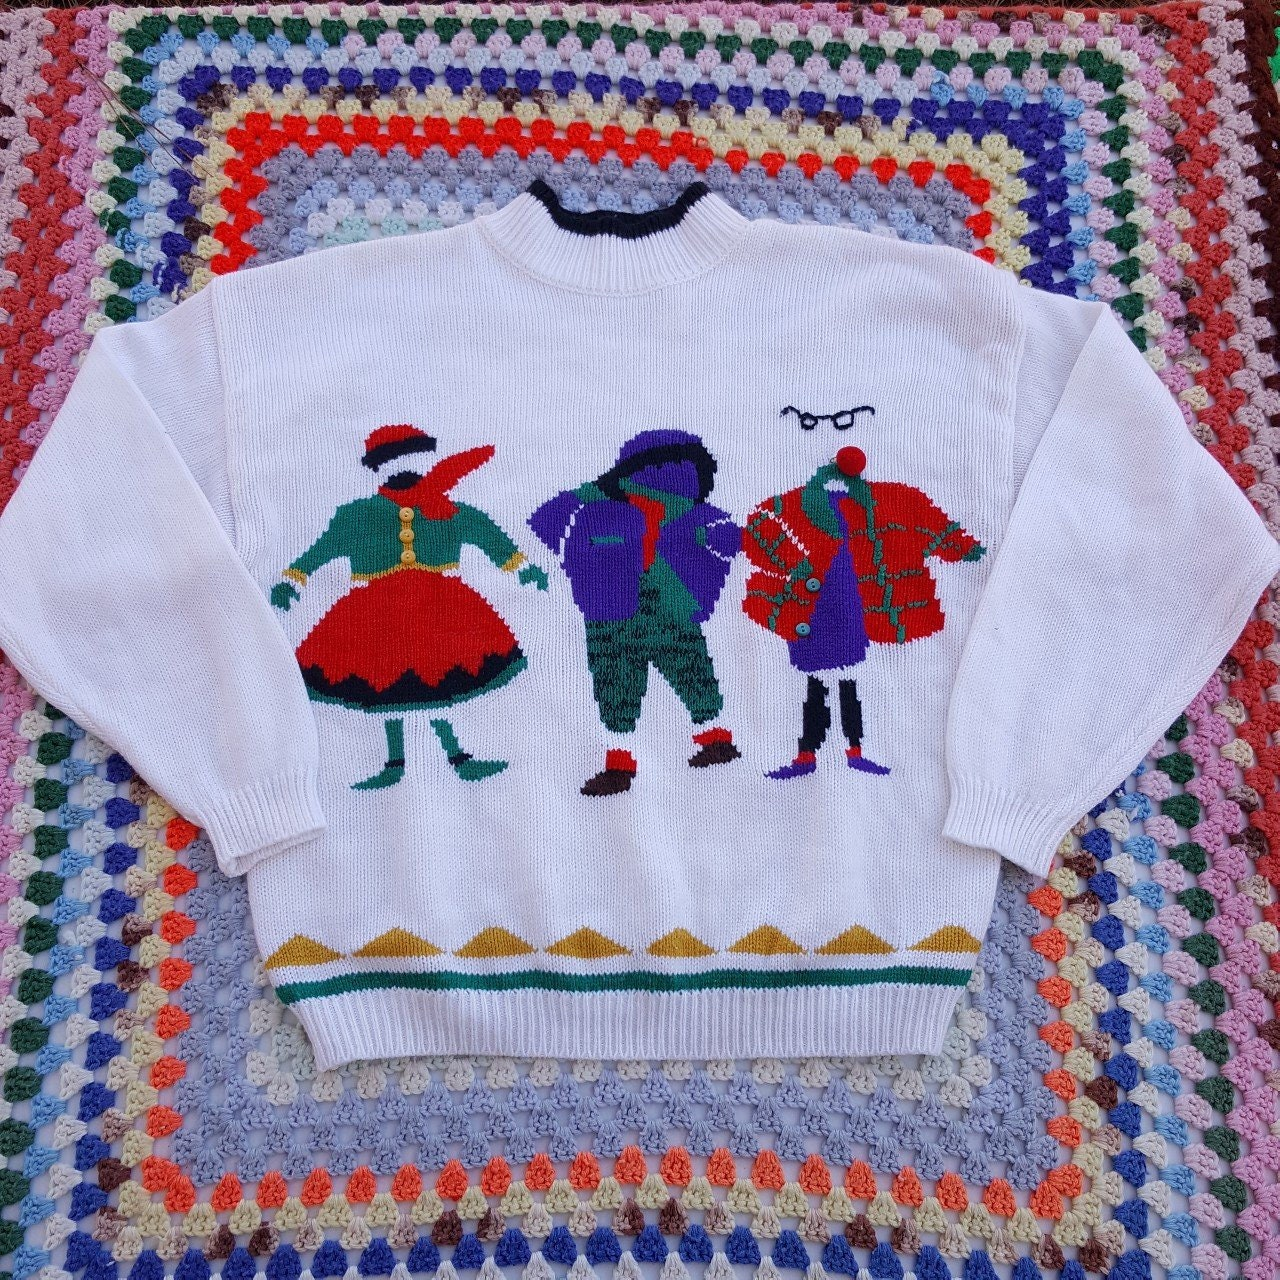 2fe9e0f66fed Vintage 90s Sweater - 80s Grunge Oversized Slouchy Ugly Christmas Sweater -  Holiday Xmas Boyfriend Shirt - Colorblock Buttons